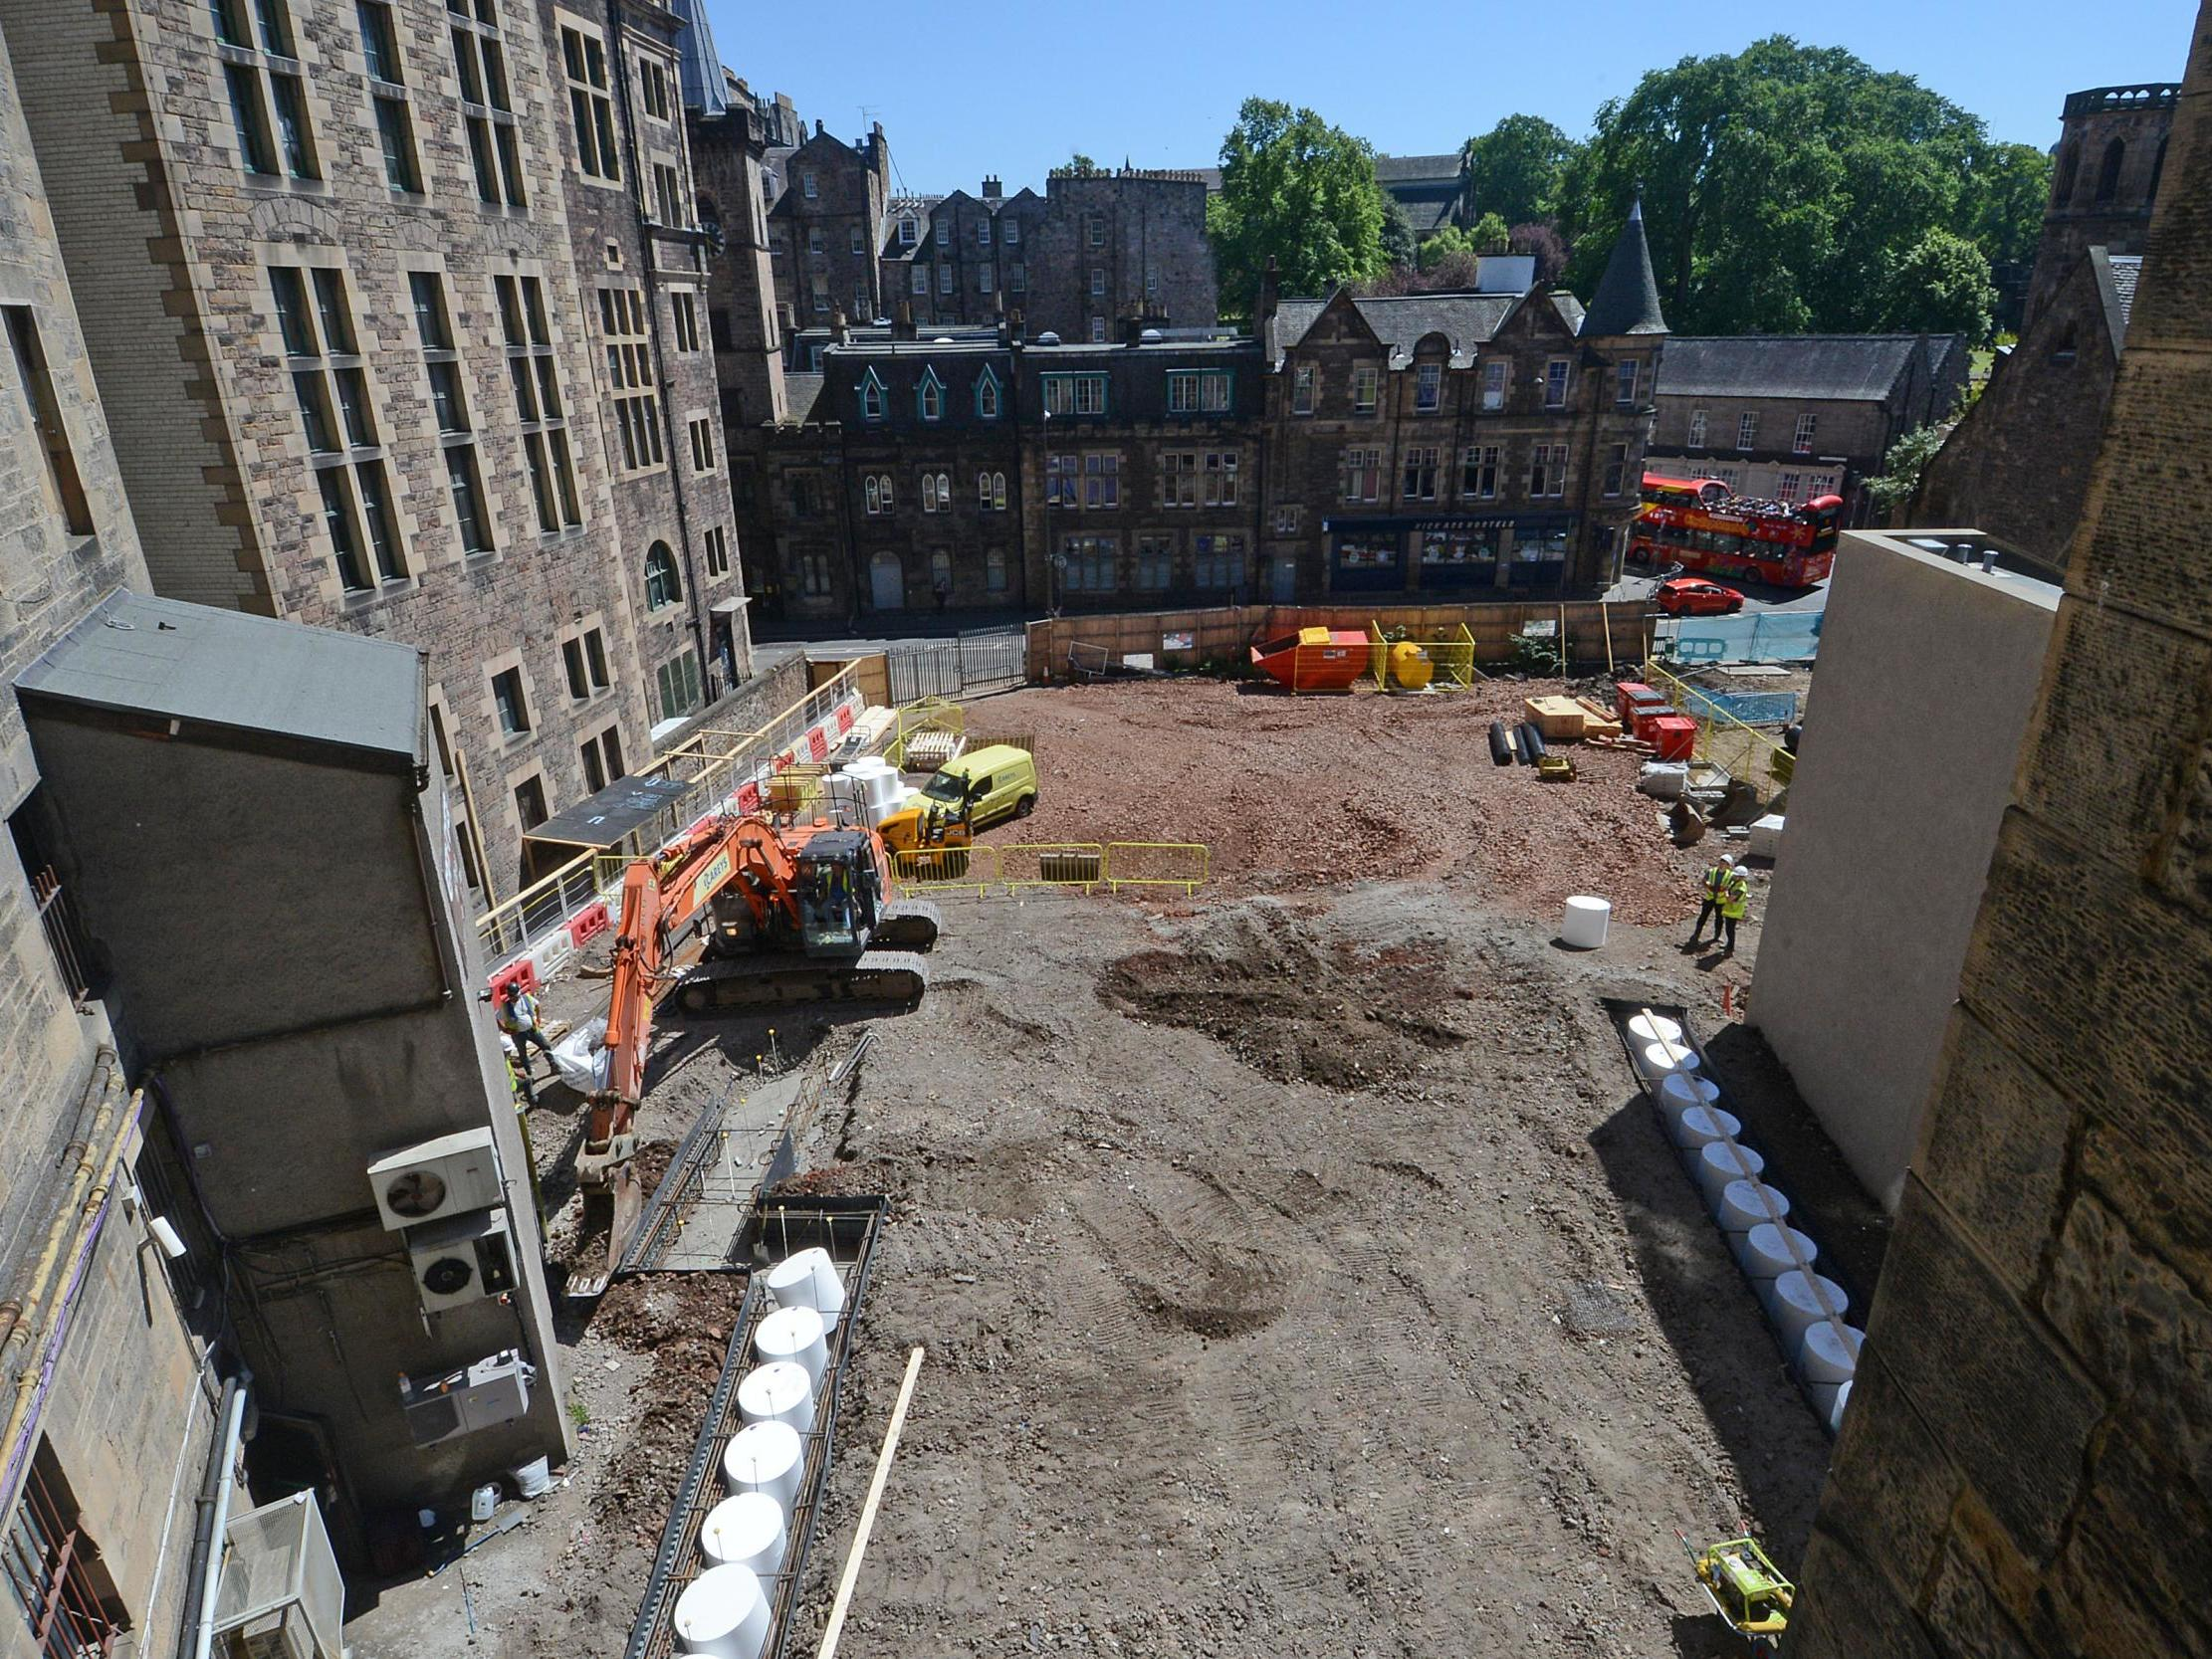 Cannonballs, skulls and jewellery: Archaeologists discover 'Bronze Age relics' in Edinburgh city centre, delaying Richard Branson's new hotel